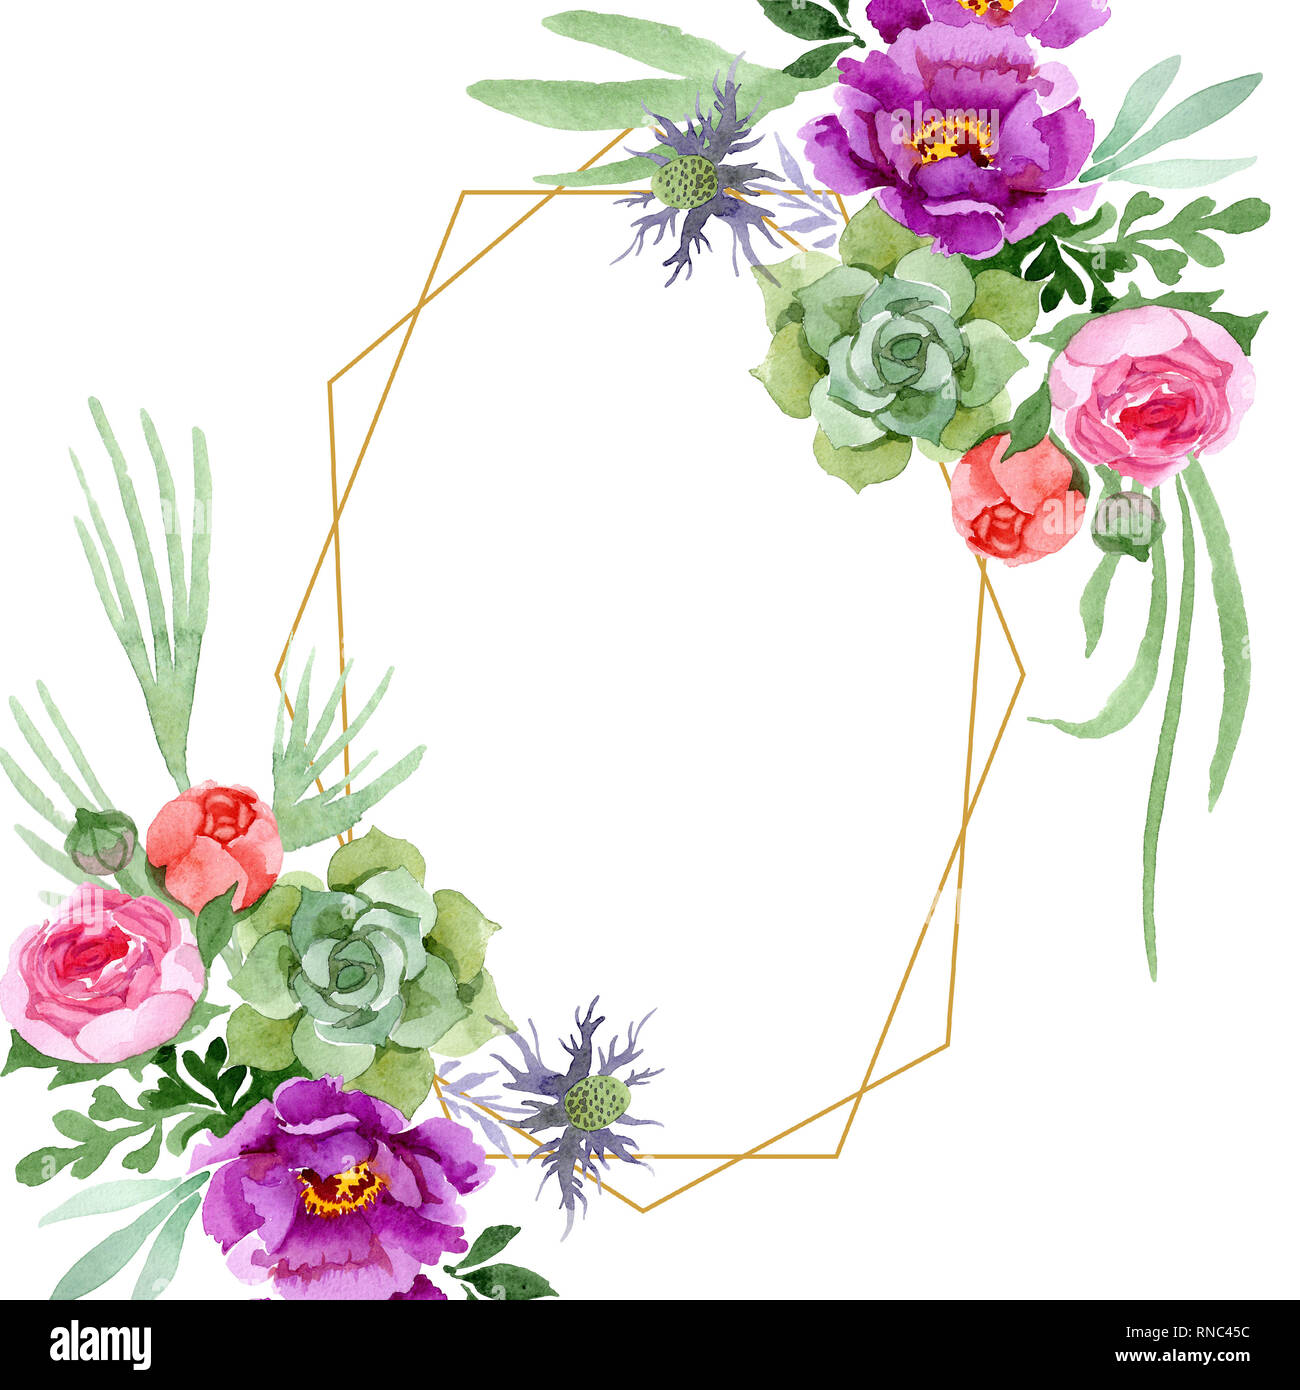 Peony And Succulent Bouquet Botanical Flower Watercolor Background Illustration Set Frame Border Ornament Square Stock Photo Alamy